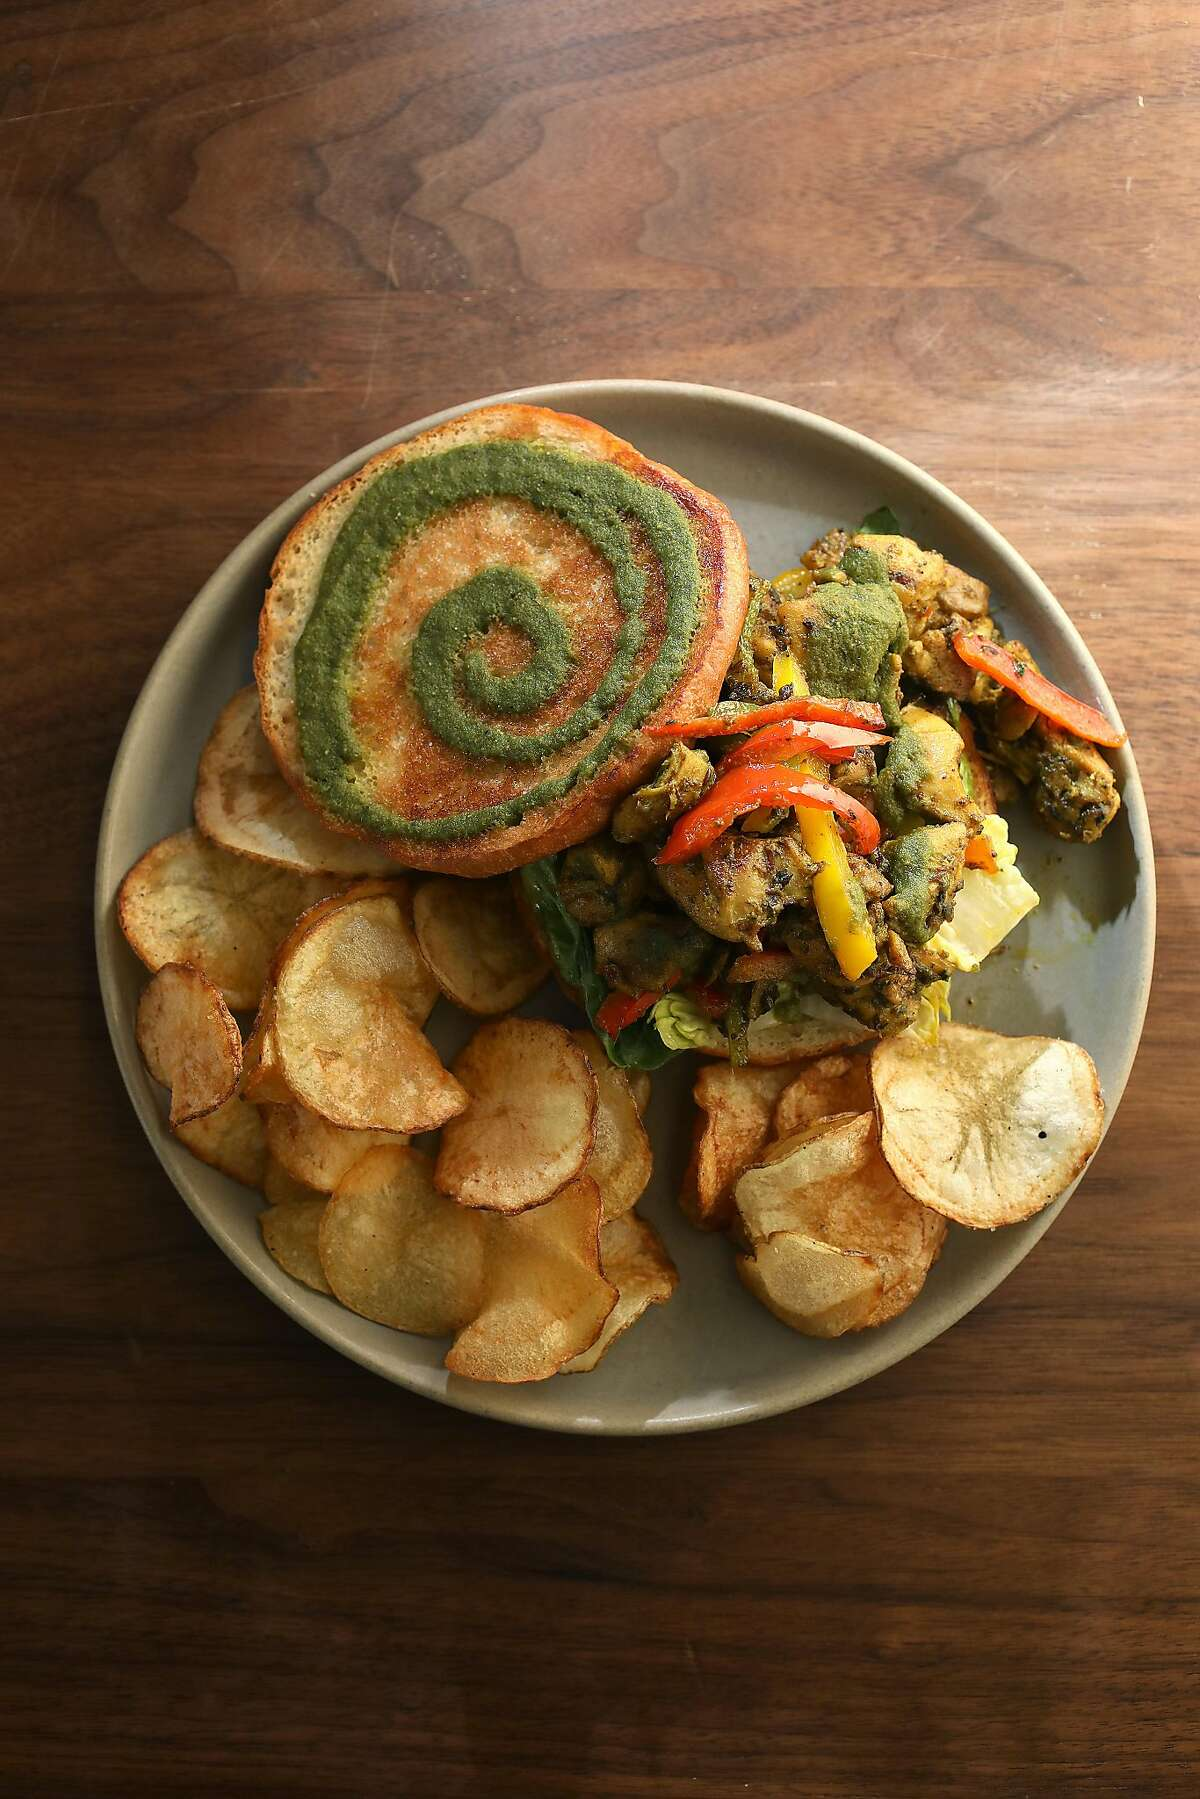 Chandni chawk chicken sandwich--cabbage slaw, mint and cilantro chutney--served at Besharam, a new Gujarati (west Indian) restaurant on Thursday, Aug. 16, 2018, in San Francisco, Calif.